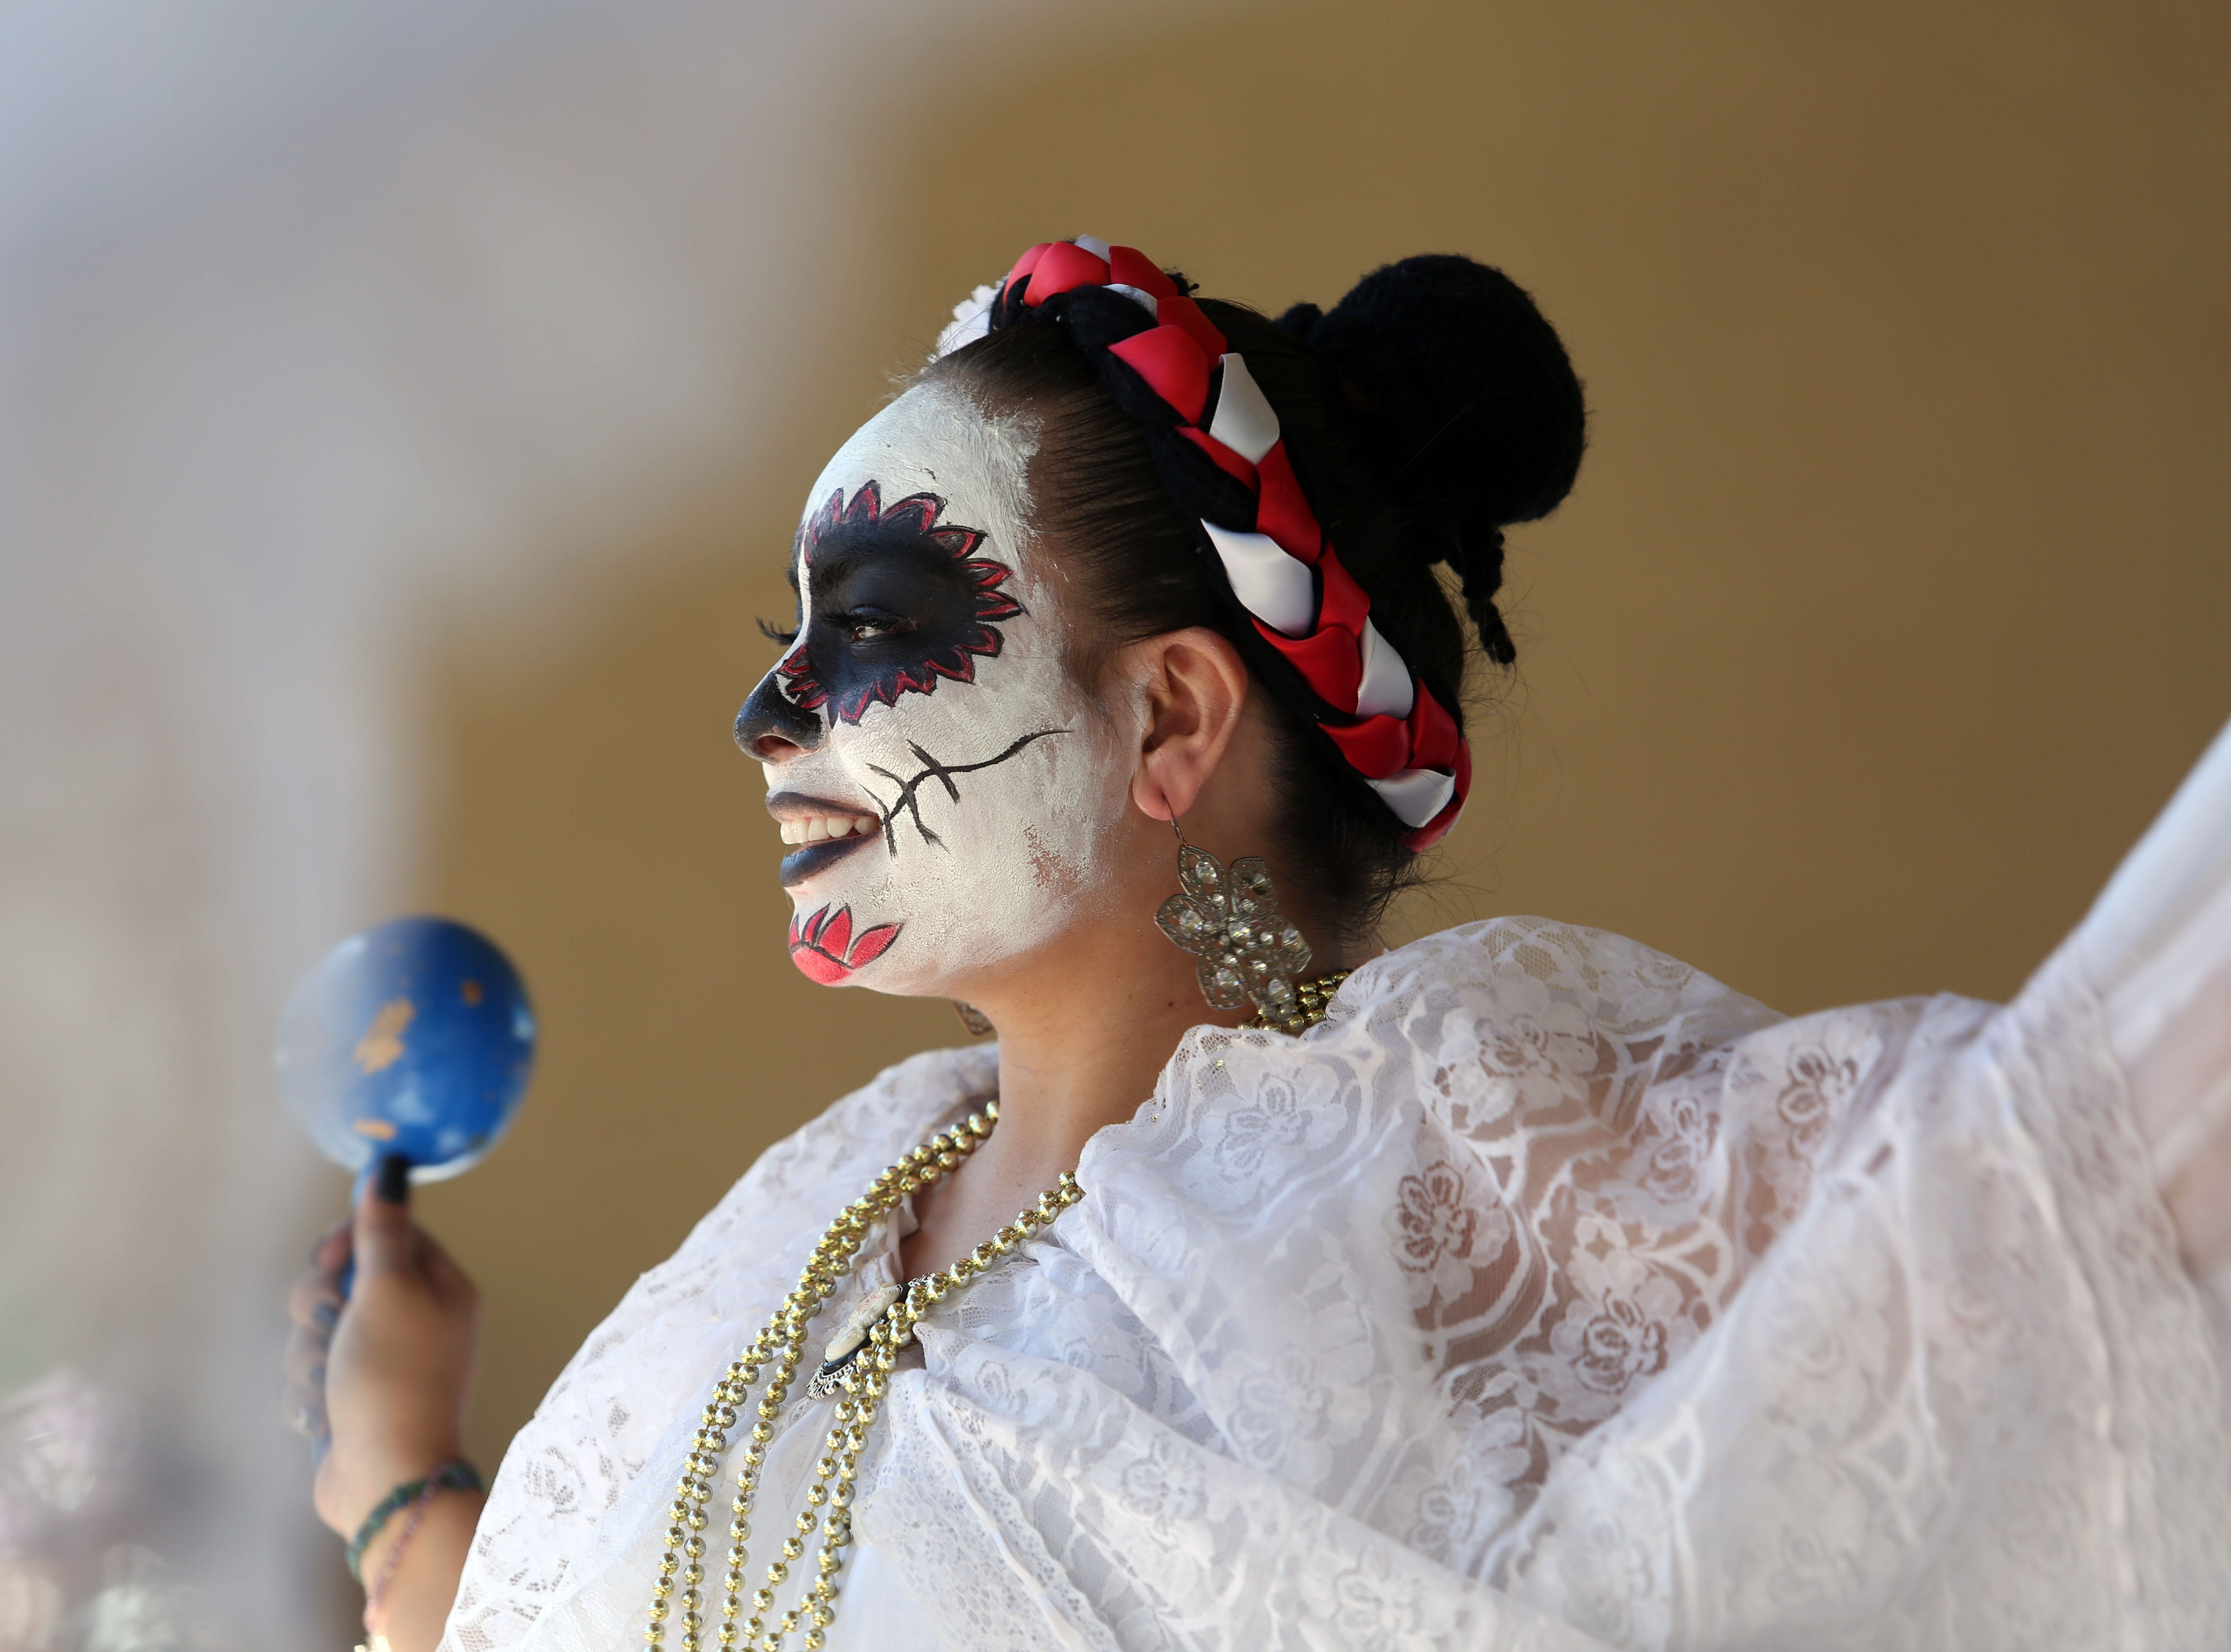 Folklorico dancers from Cathedral City High School perform at Cathedral City's annual Dia de los Muertos celebration at Desert Memorial Park cemetery on Saturday, October 27, 2018.